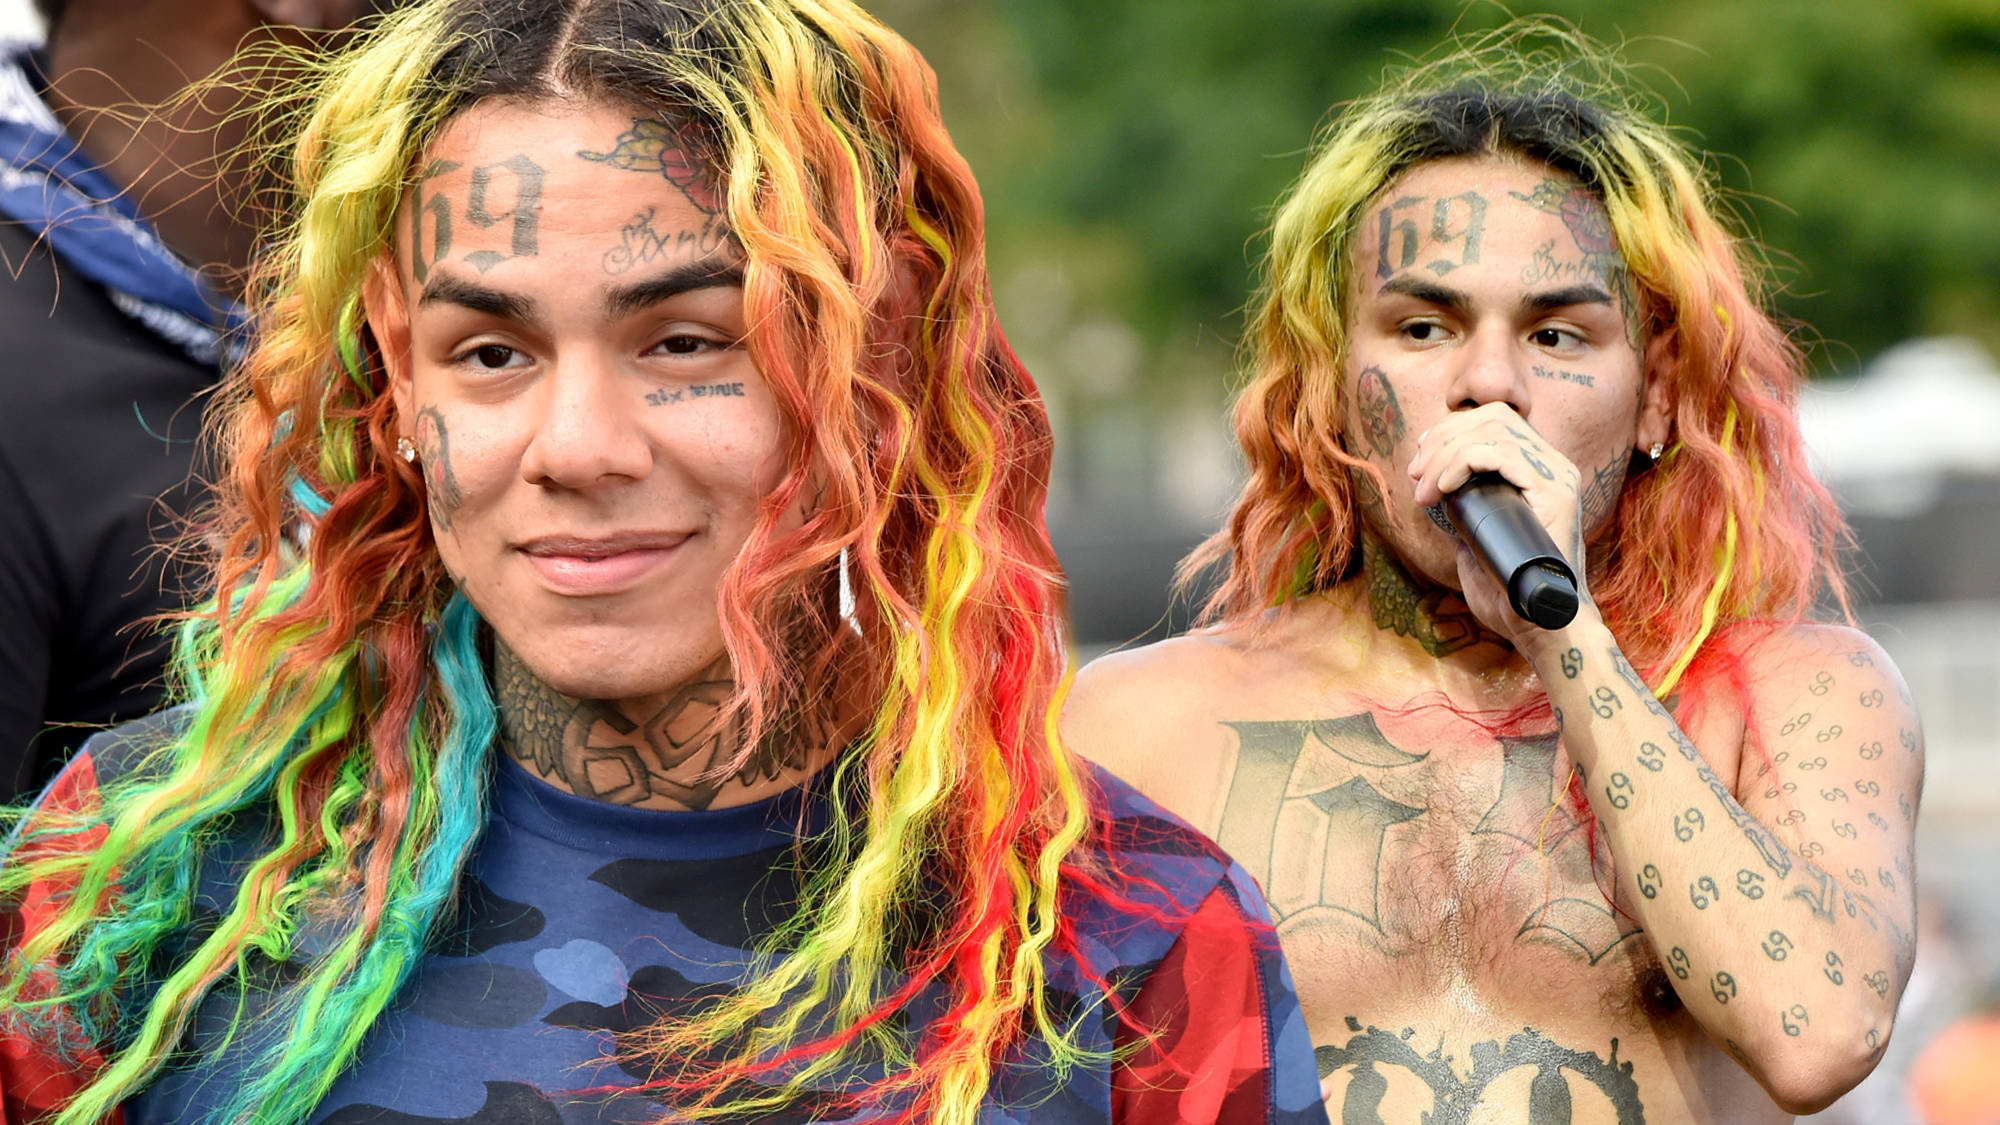 Tekashi 6ix9ine Reportedly Signs $10 Million Record Deal From Jail